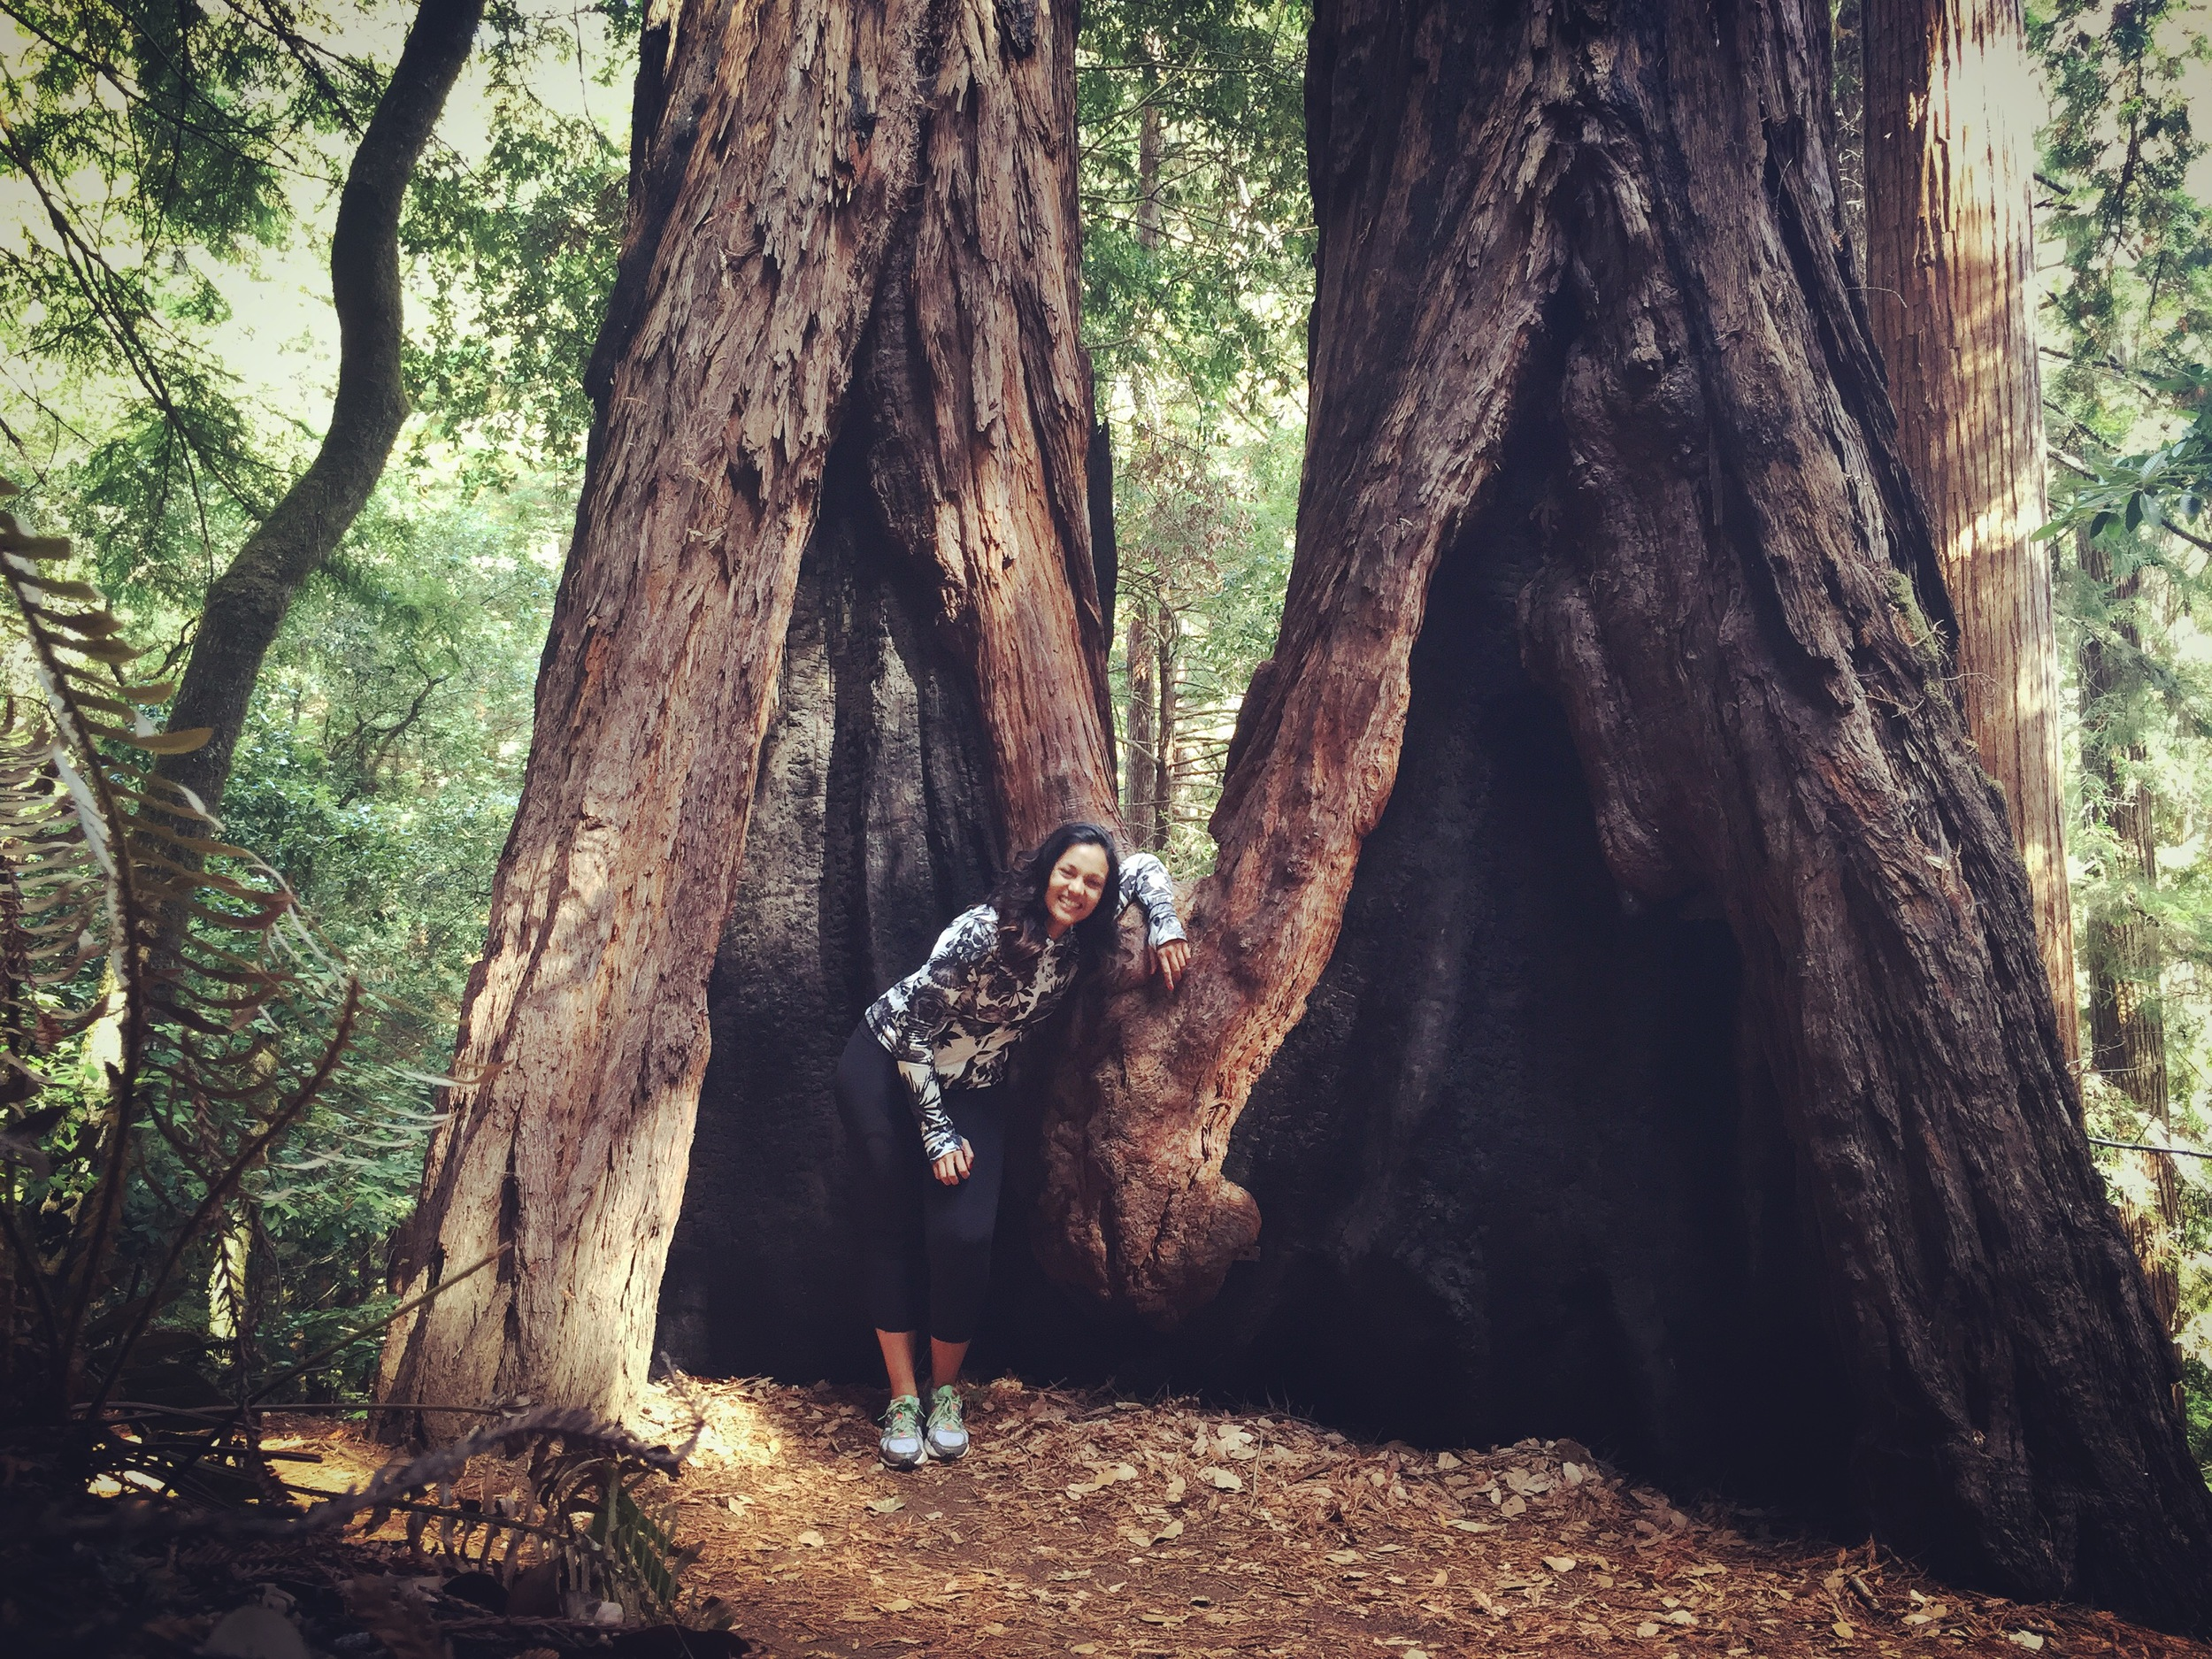 Hiking in Muir Woods outside of Mill Valley, California